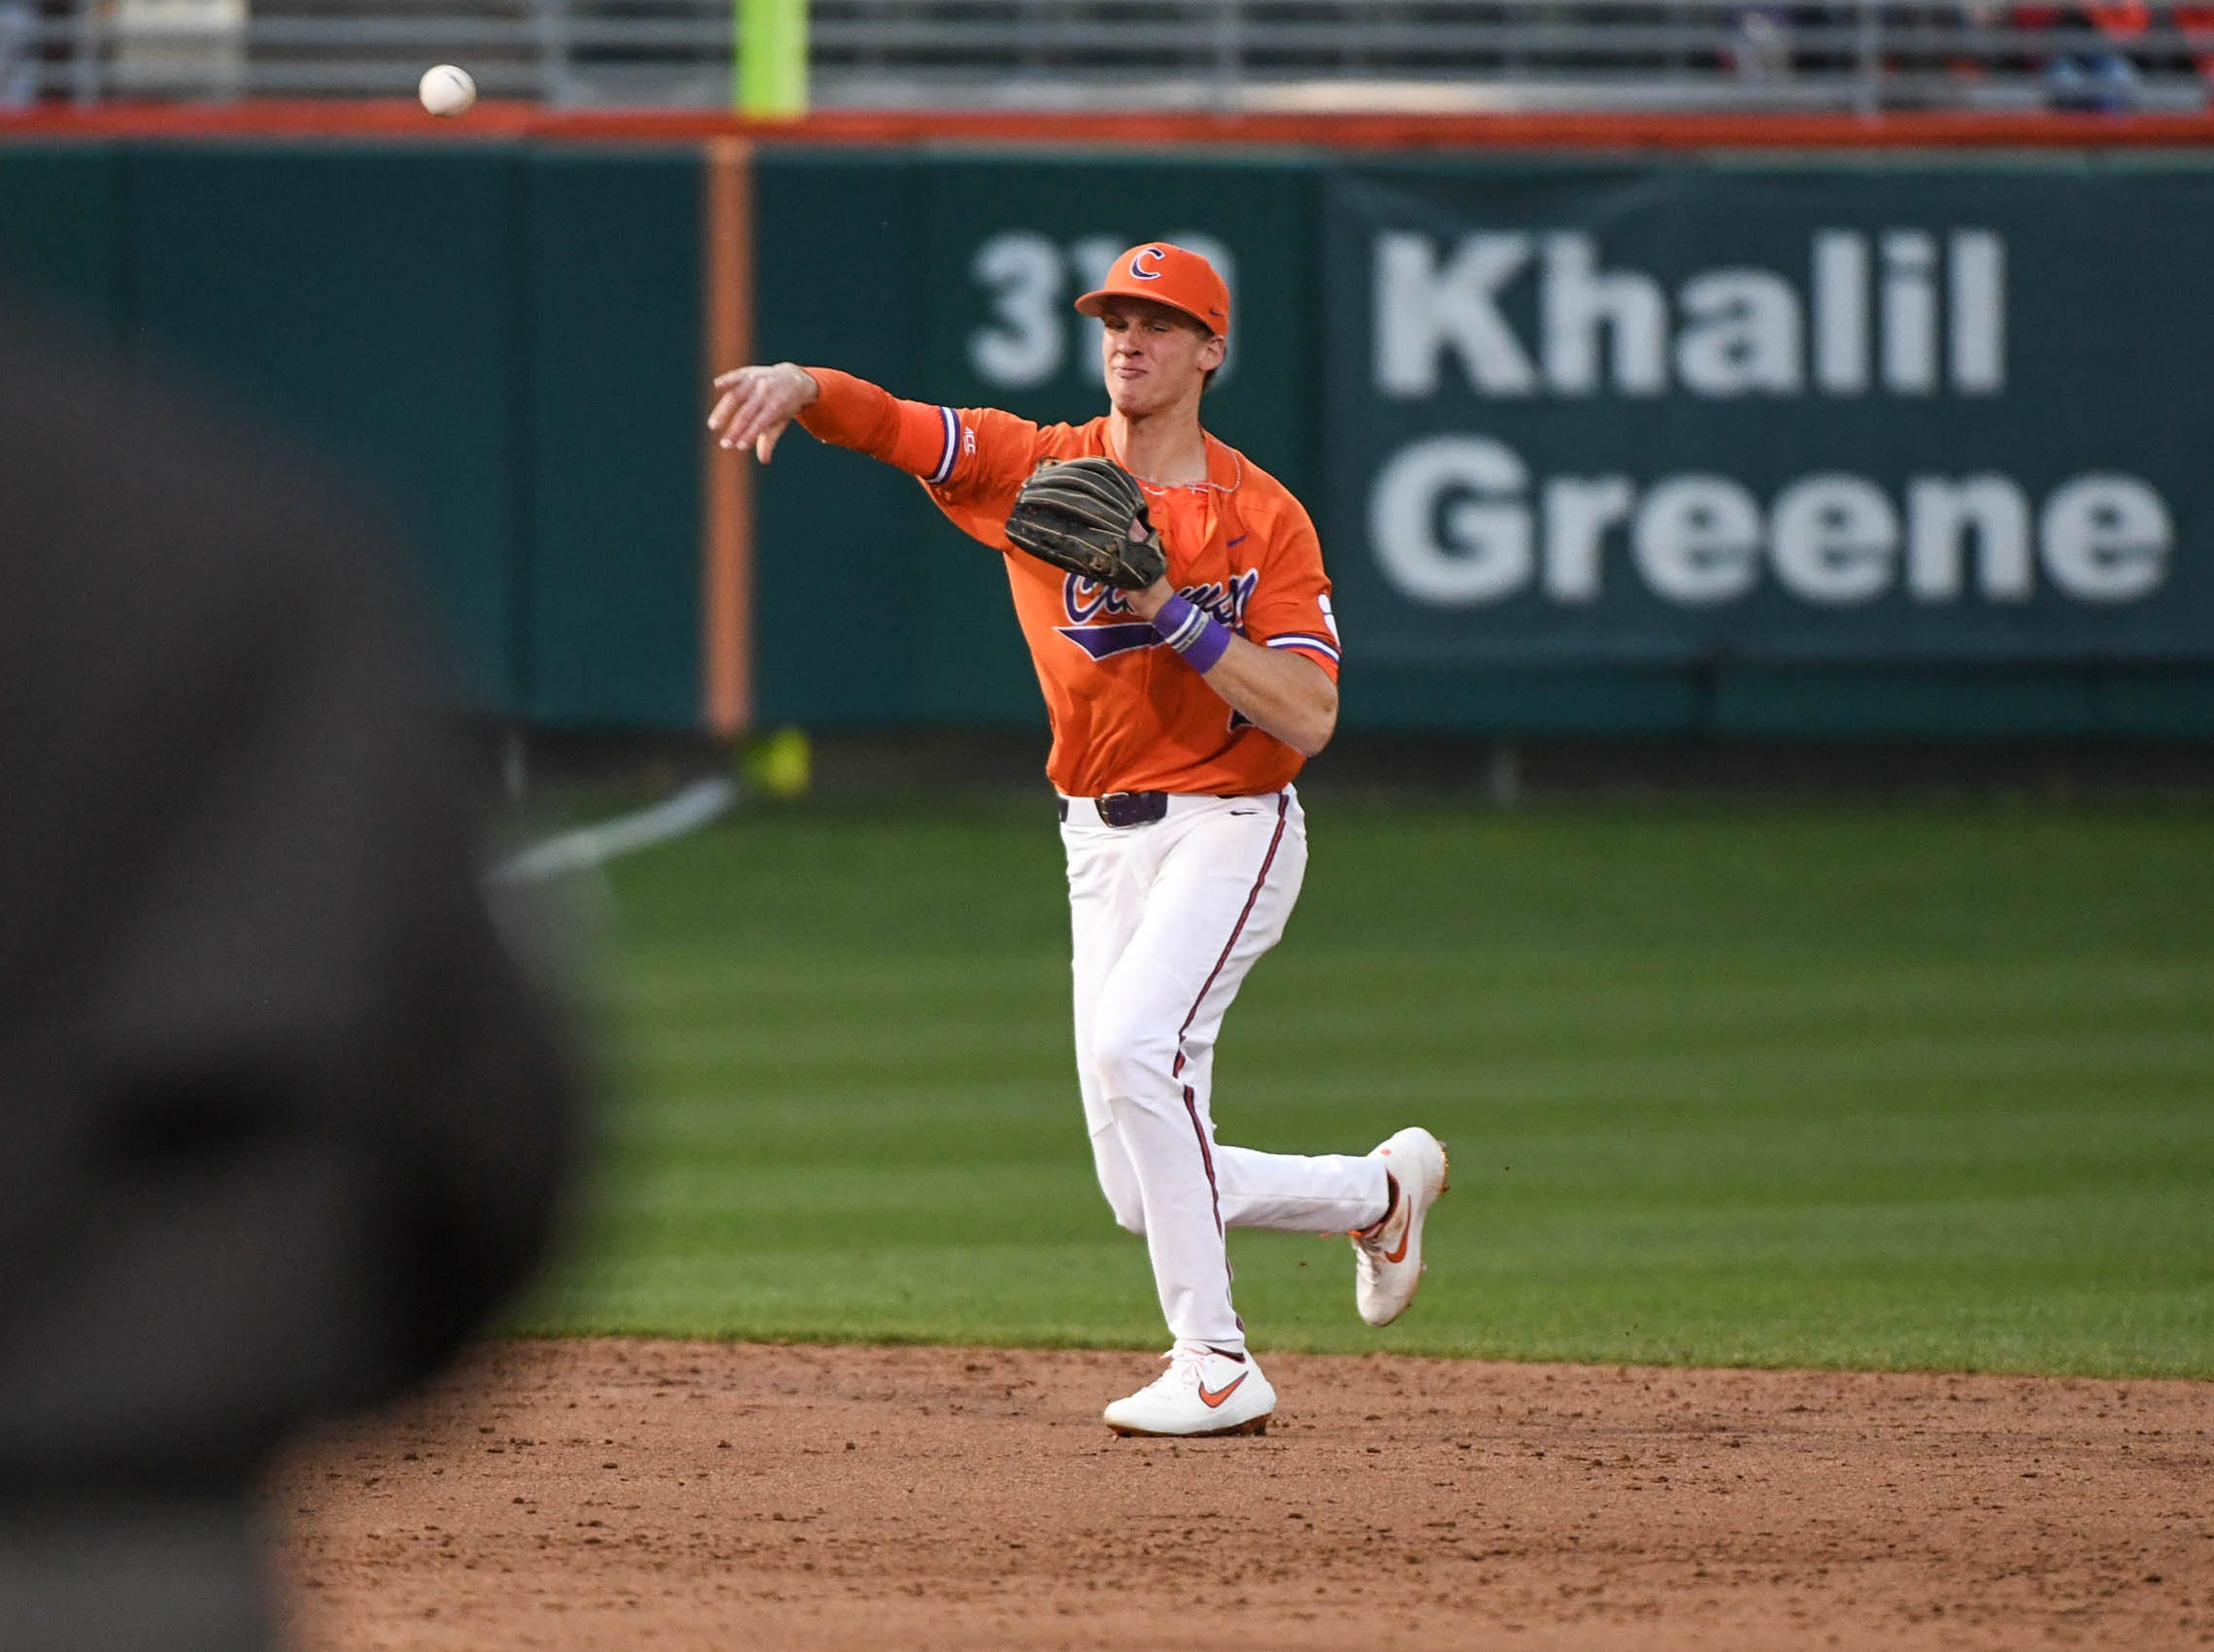 Clemson junior Logan Davidson(8) throws to first base playing South Alabama during the top of the ninth inning at Doug Kingsmore Stadium in Clemson Friday, February 15, 2019.